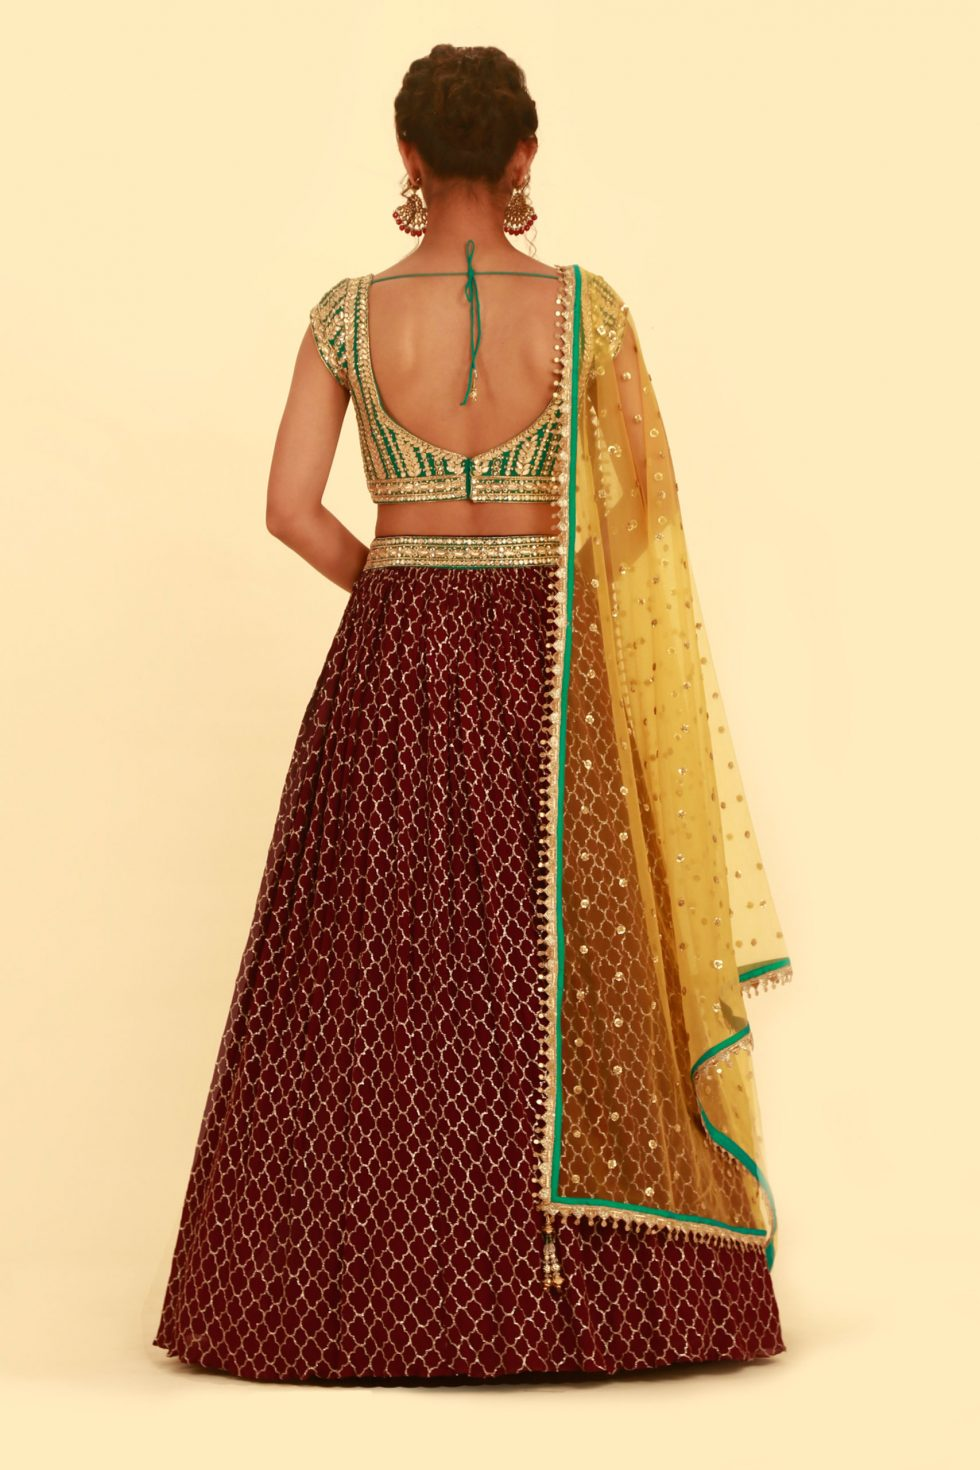 Burgundy wine lehenga with contrast green choli and contrast yellow dupatta with gold embellishments